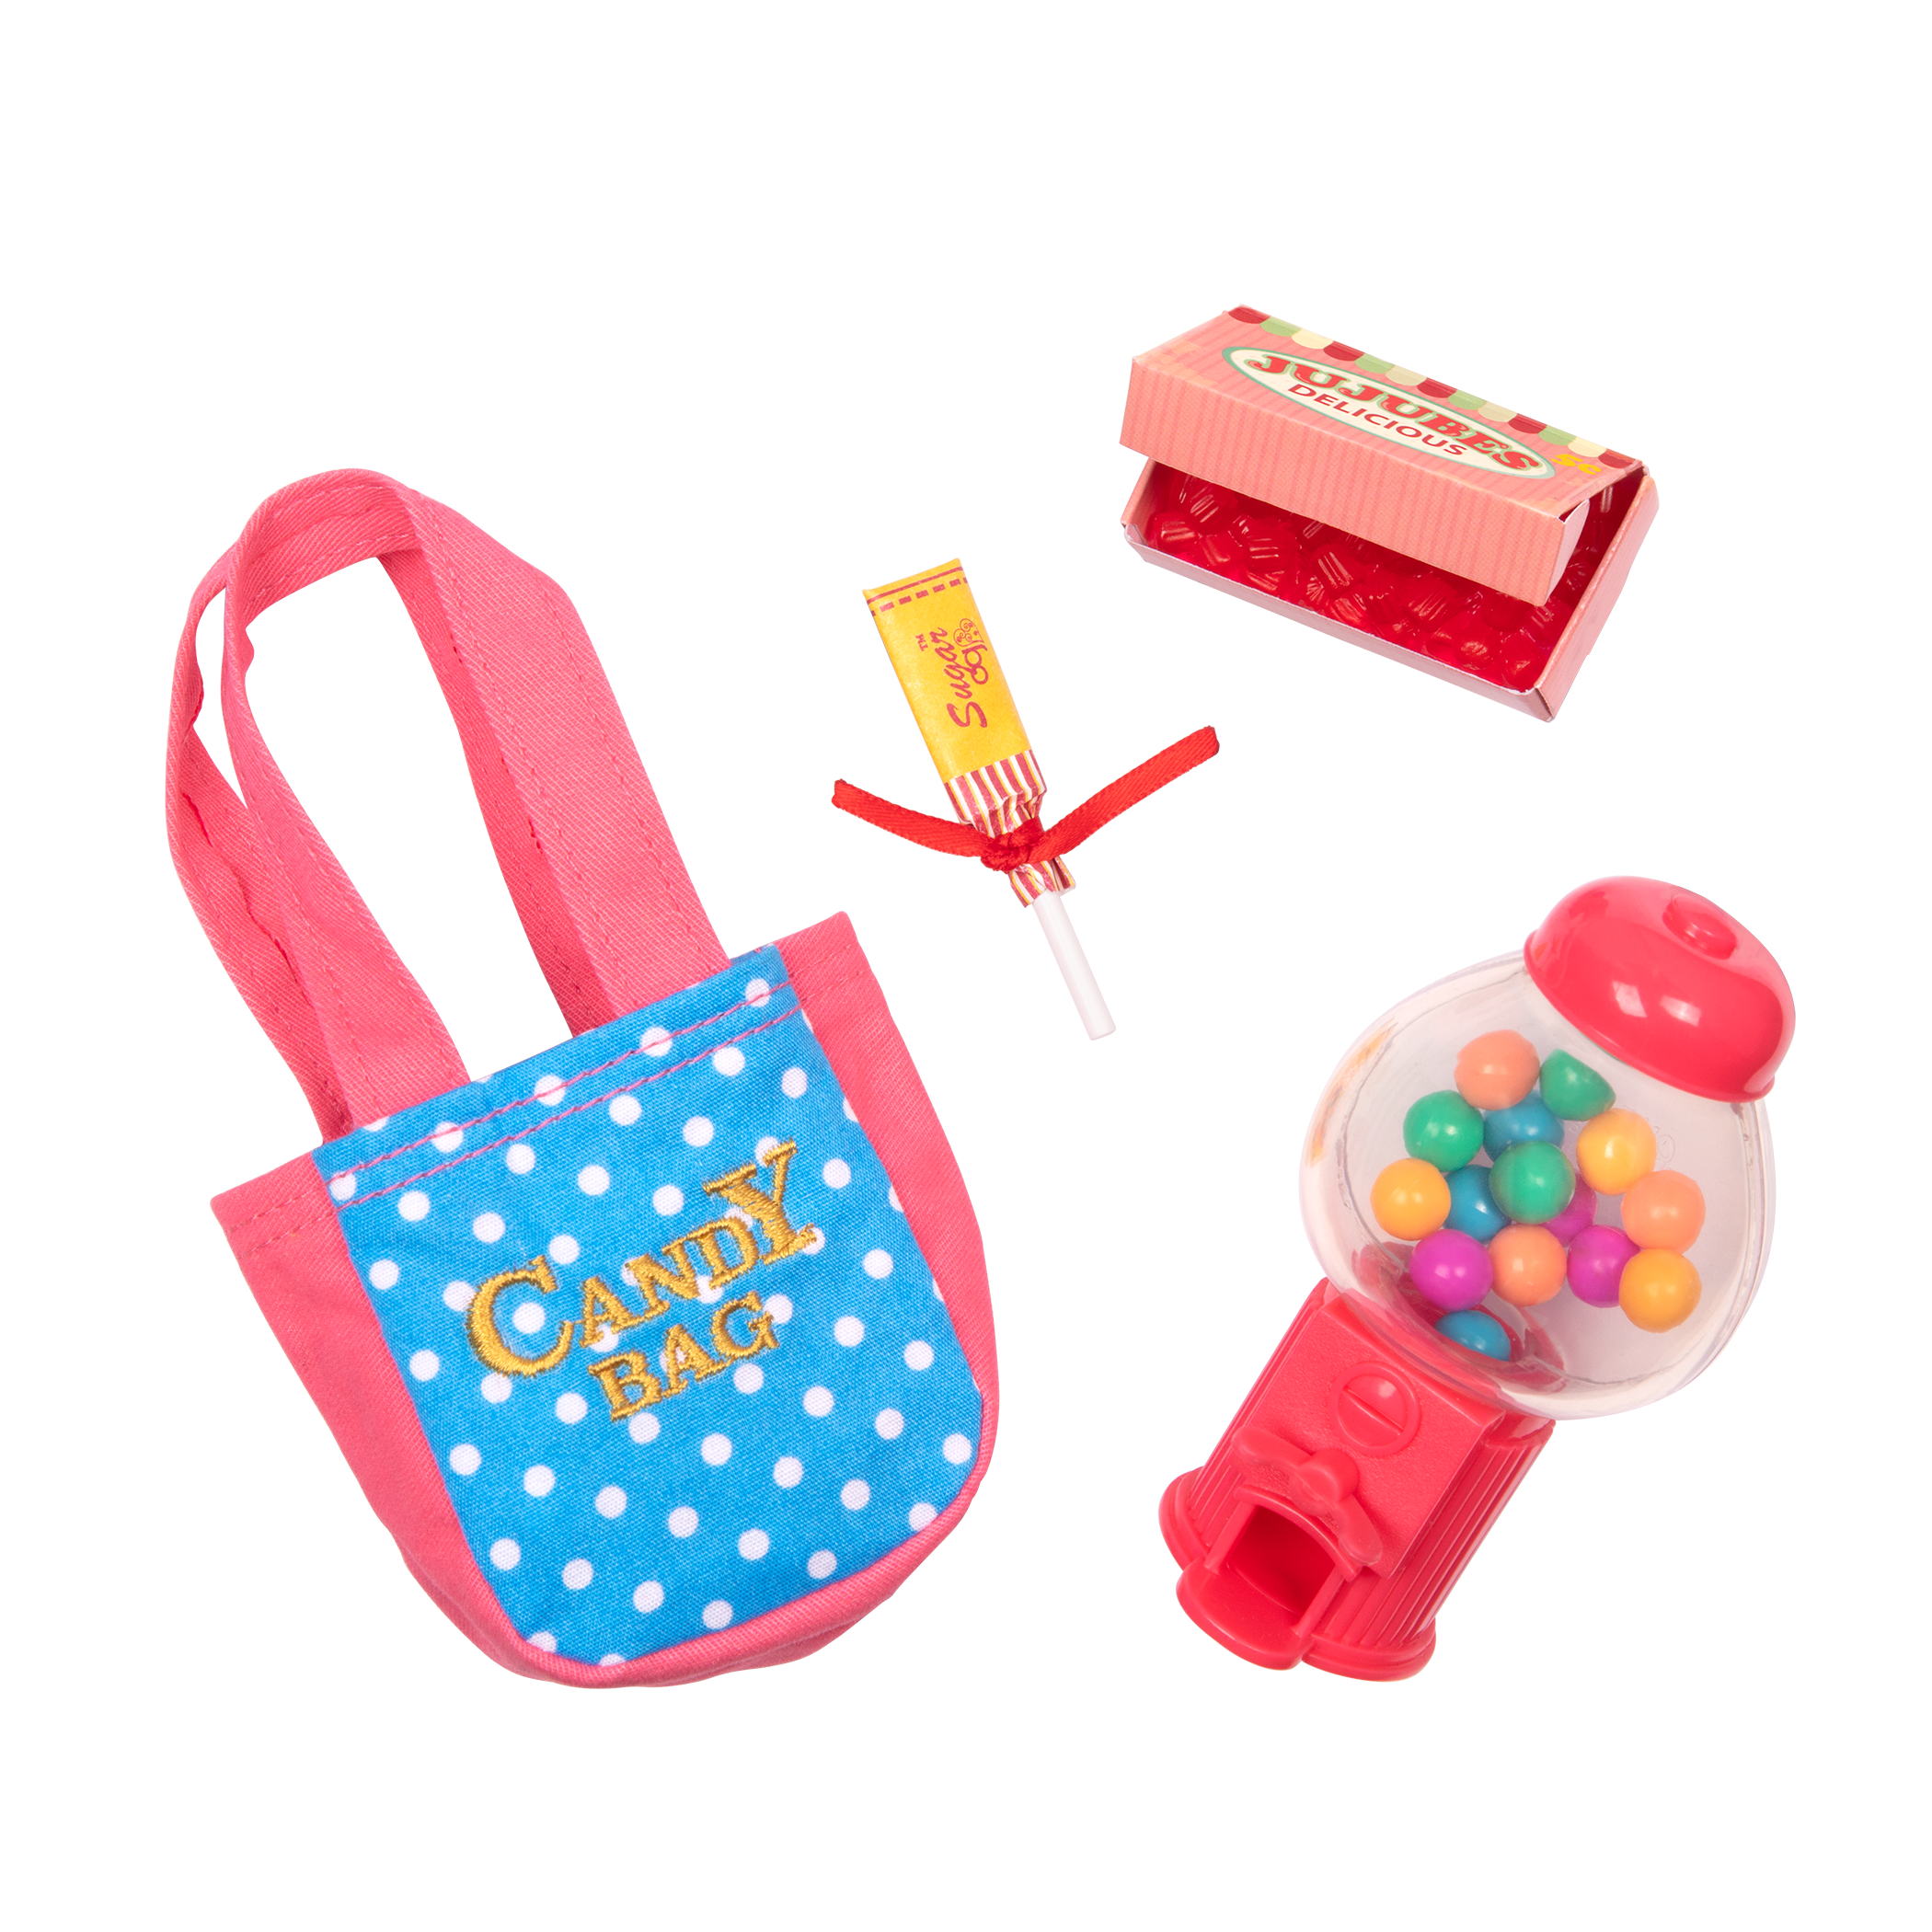 Treats and Sweets Gumball Machine for 18-inch Dolls